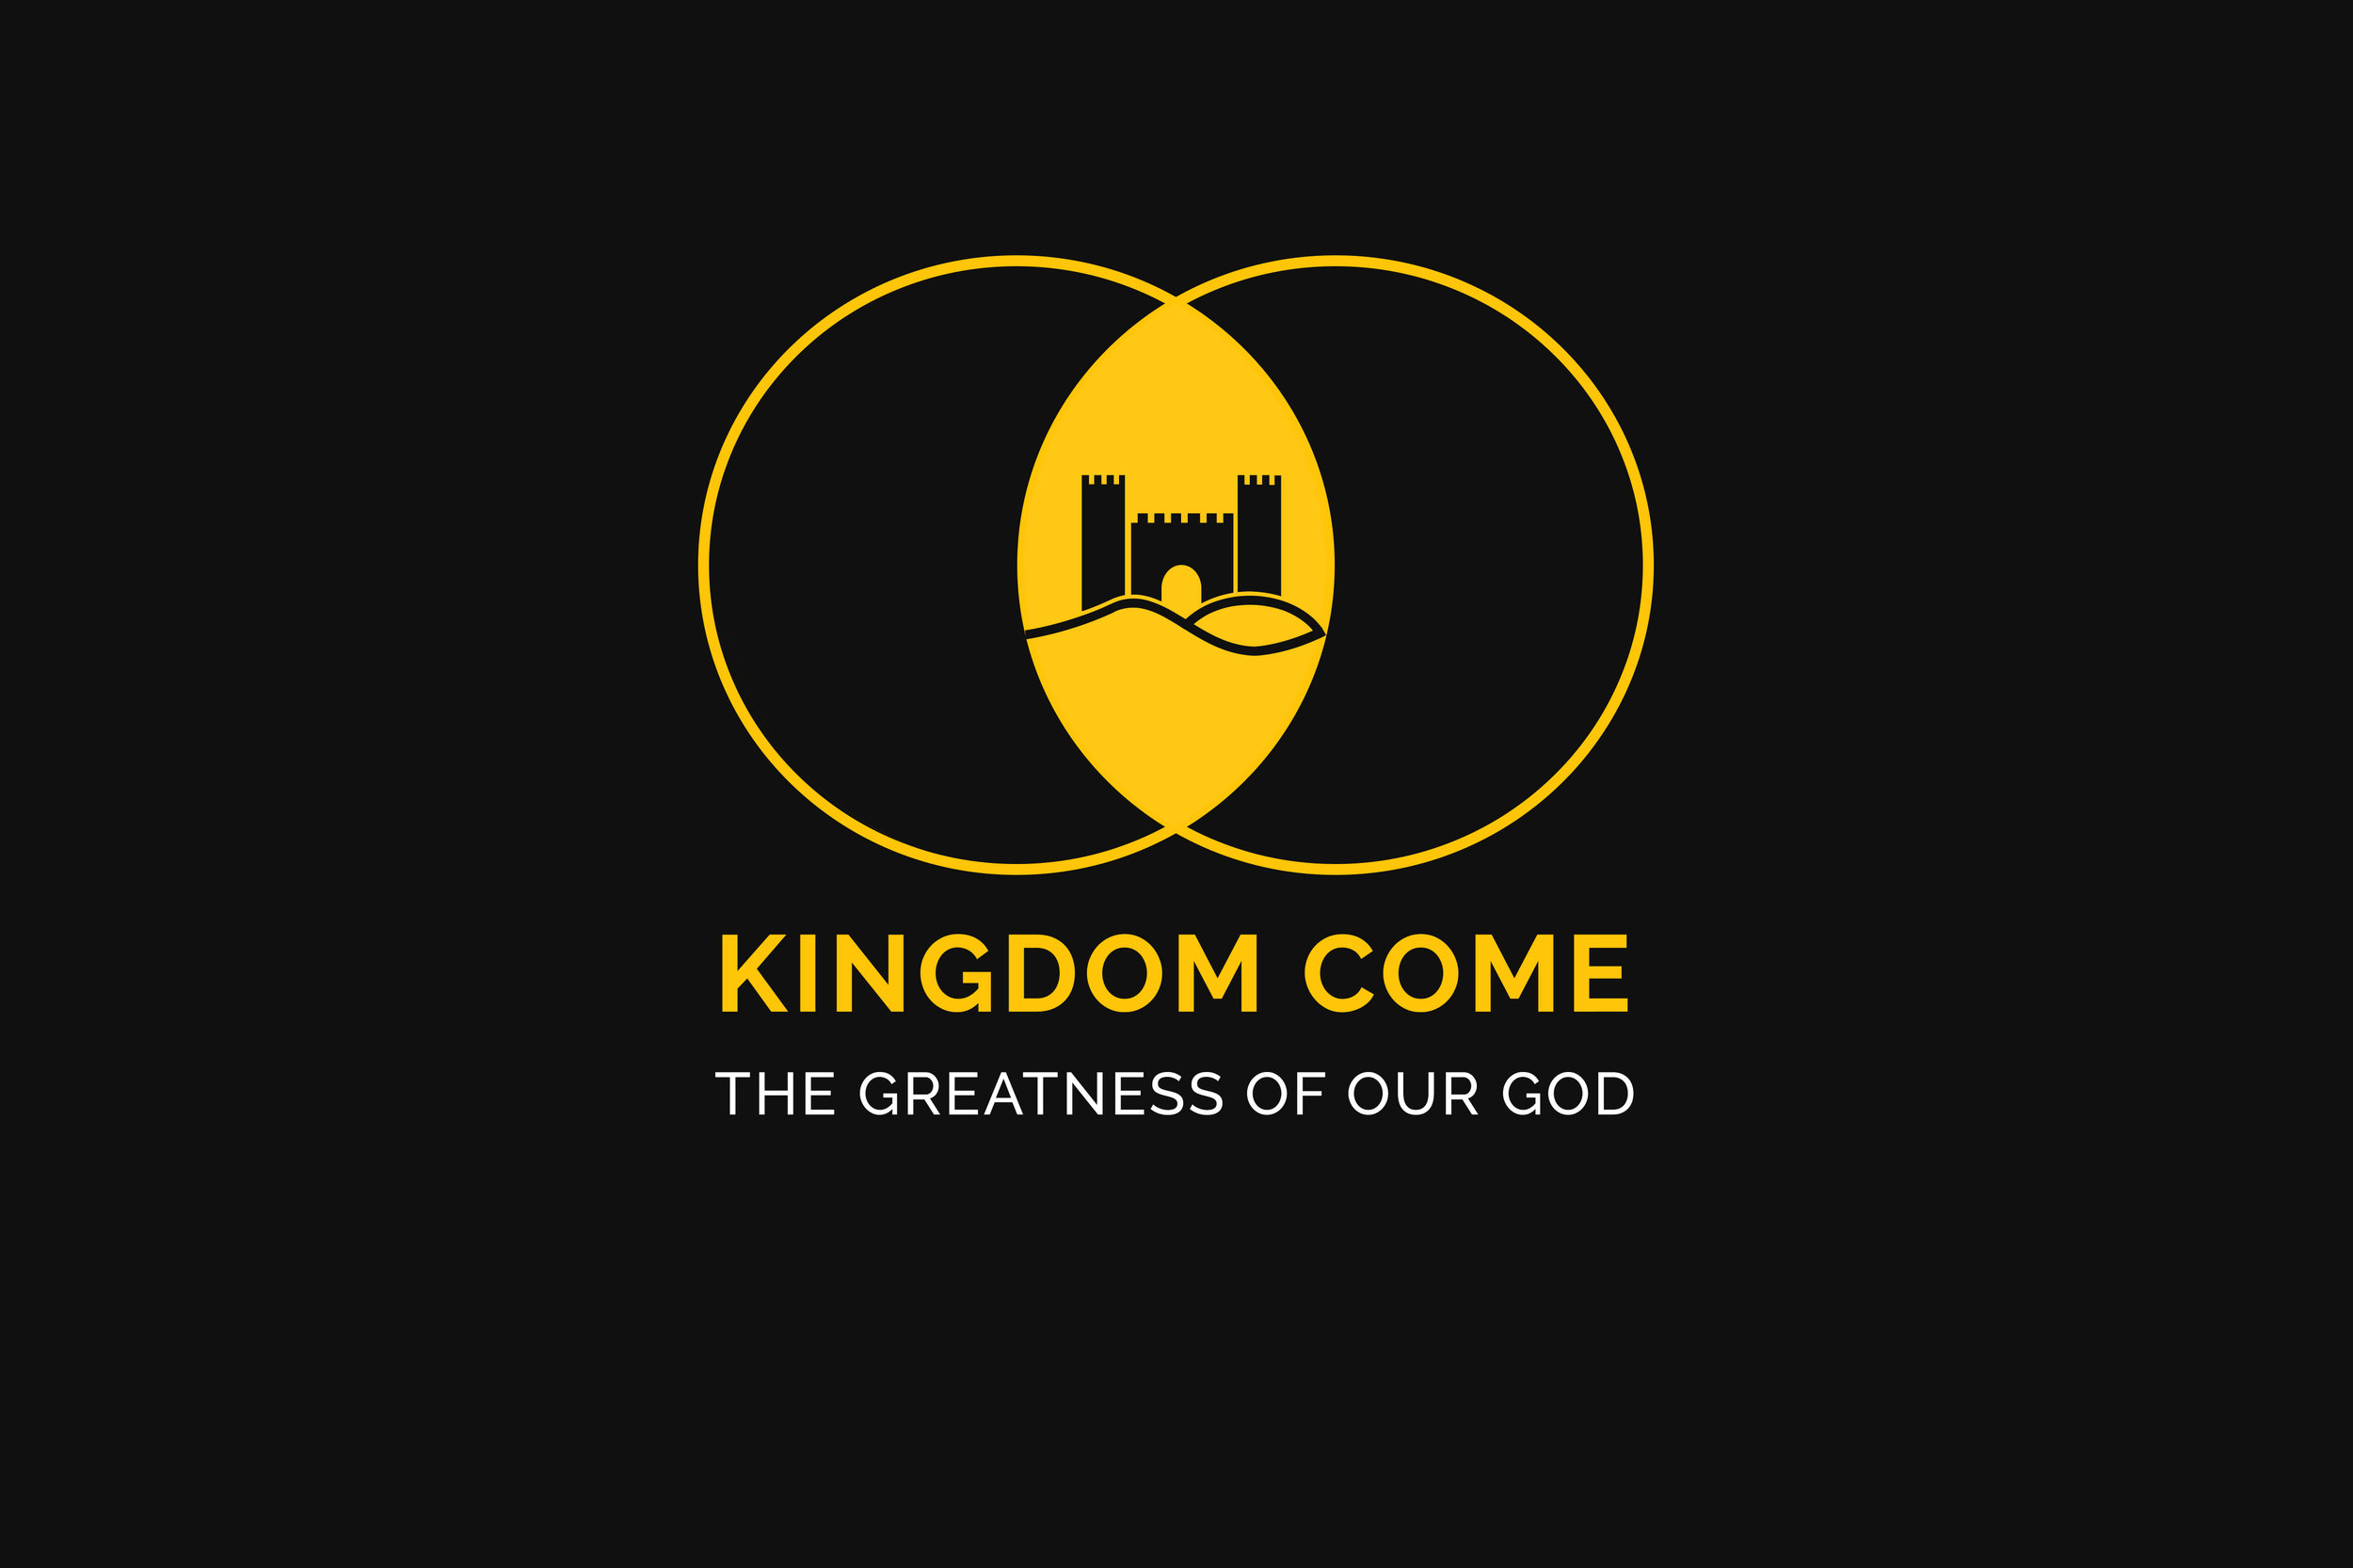 Kingdom-Come-Greatness-of-our-God.jpg